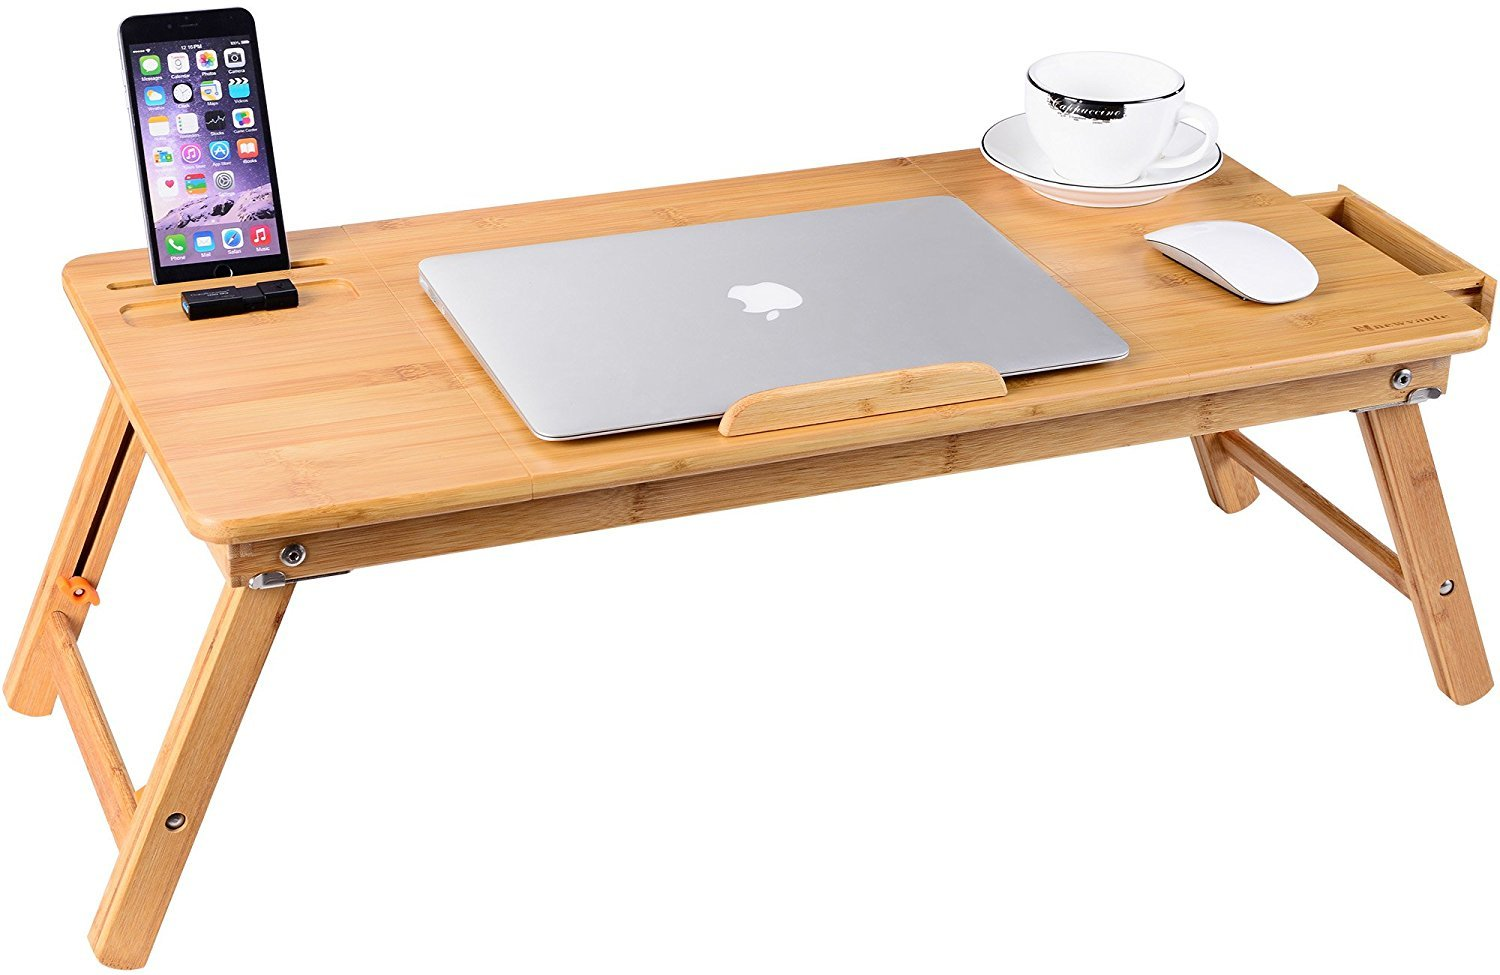 Laptop Tray Desk NNEWVANTE Bamboo Adjustable Table Foldable Breakfast Serving Right-Left Hand Bed Tray Large Size-71L